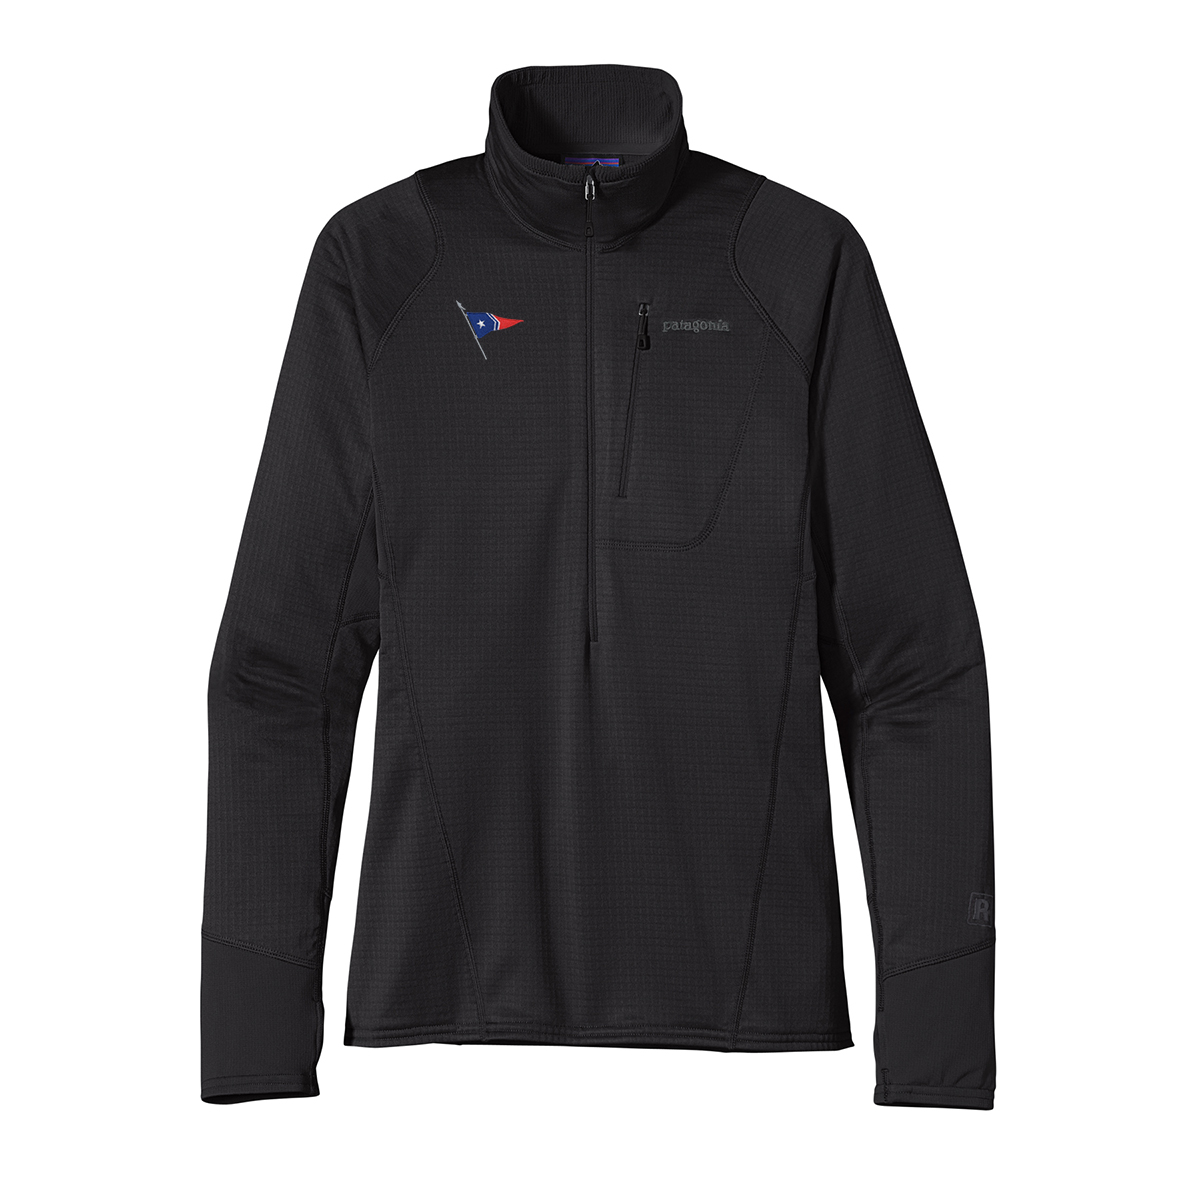 GHYC - M'S R1 PULLOVER